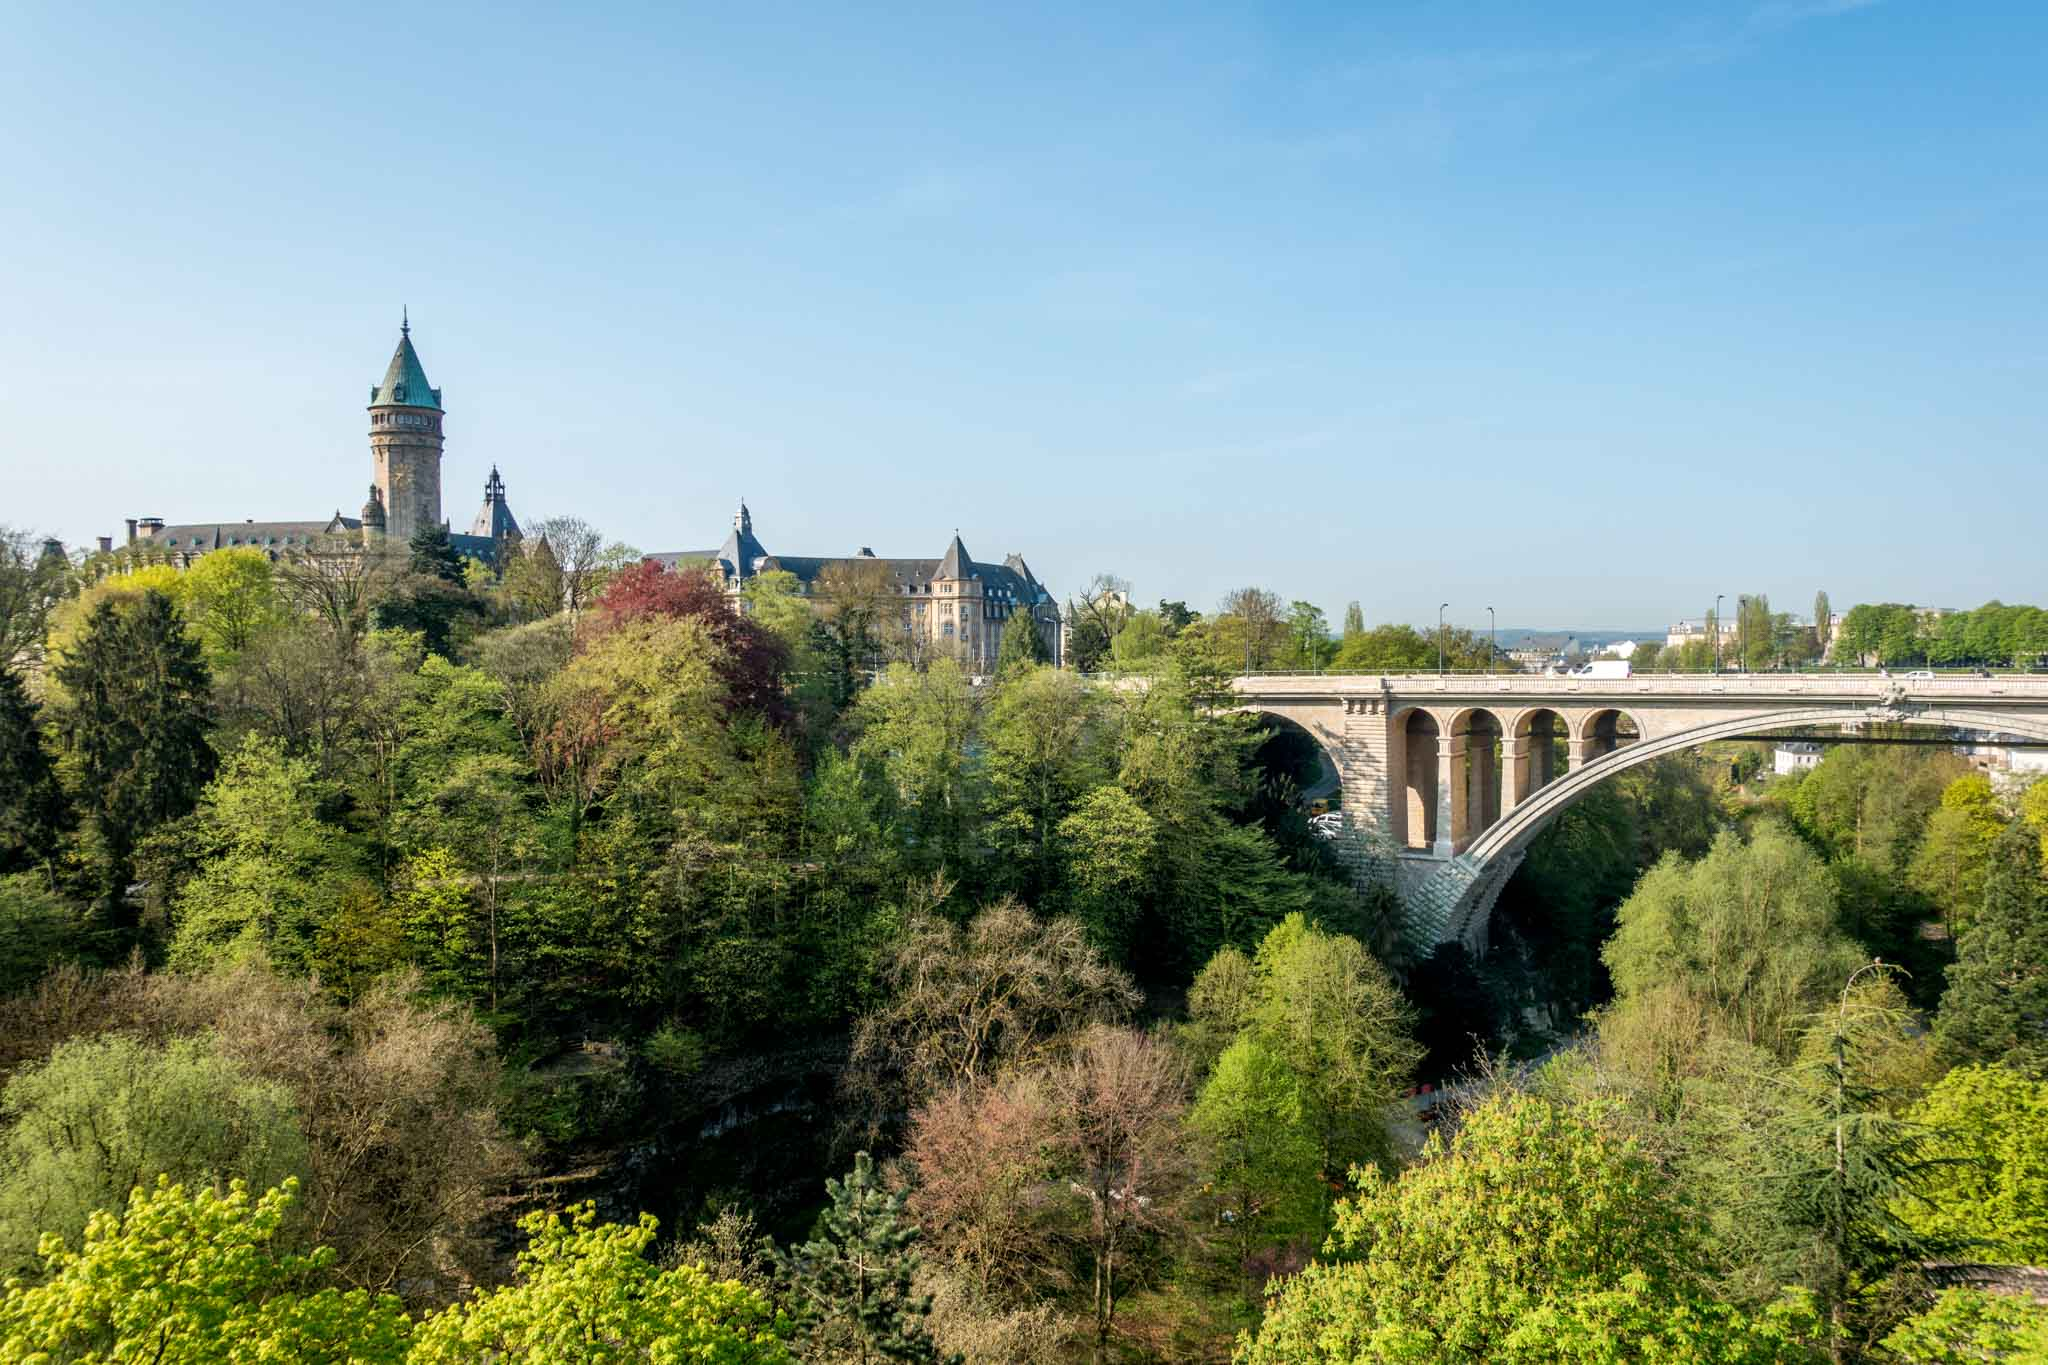 View of bridge and building across a tree-filled valley in Luxembourg City, Luxembourg